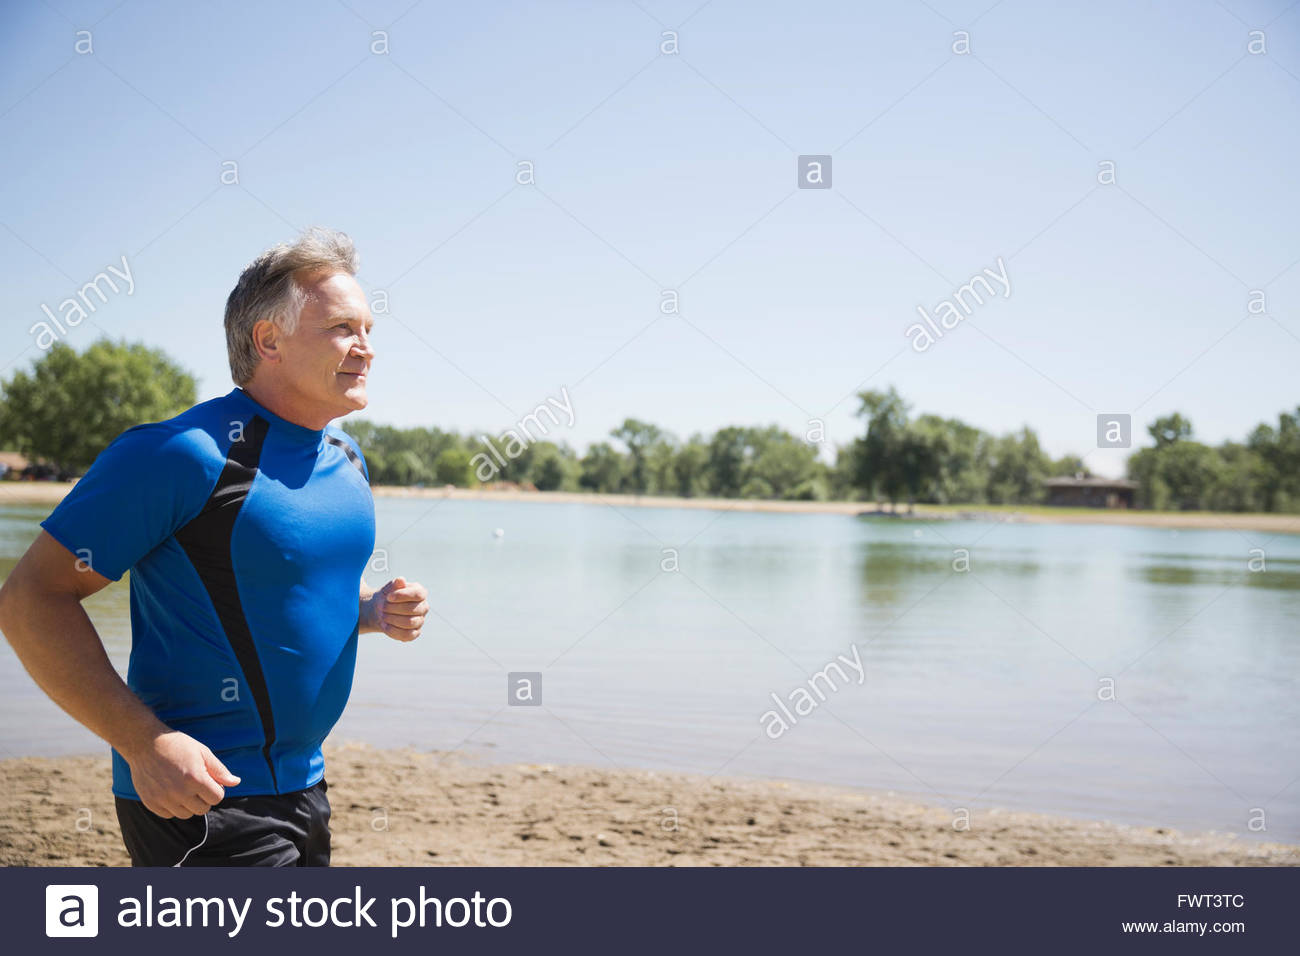 Middle-aged man jogging on beach - Stock Image